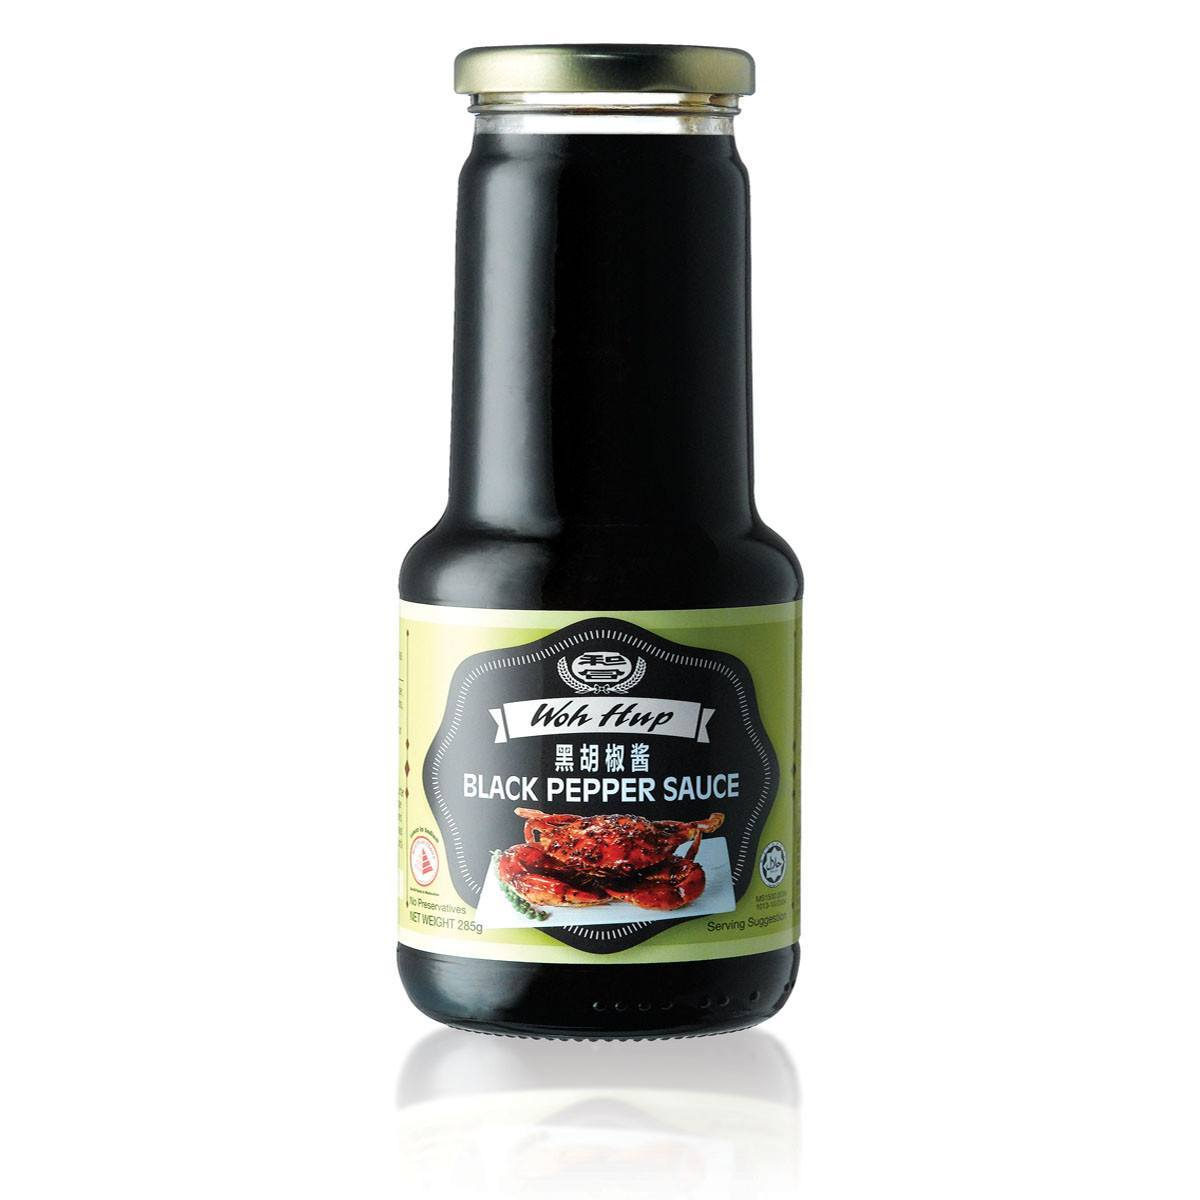 Black Pepper Sauce 285g Woh Hup - LimSiangHuat